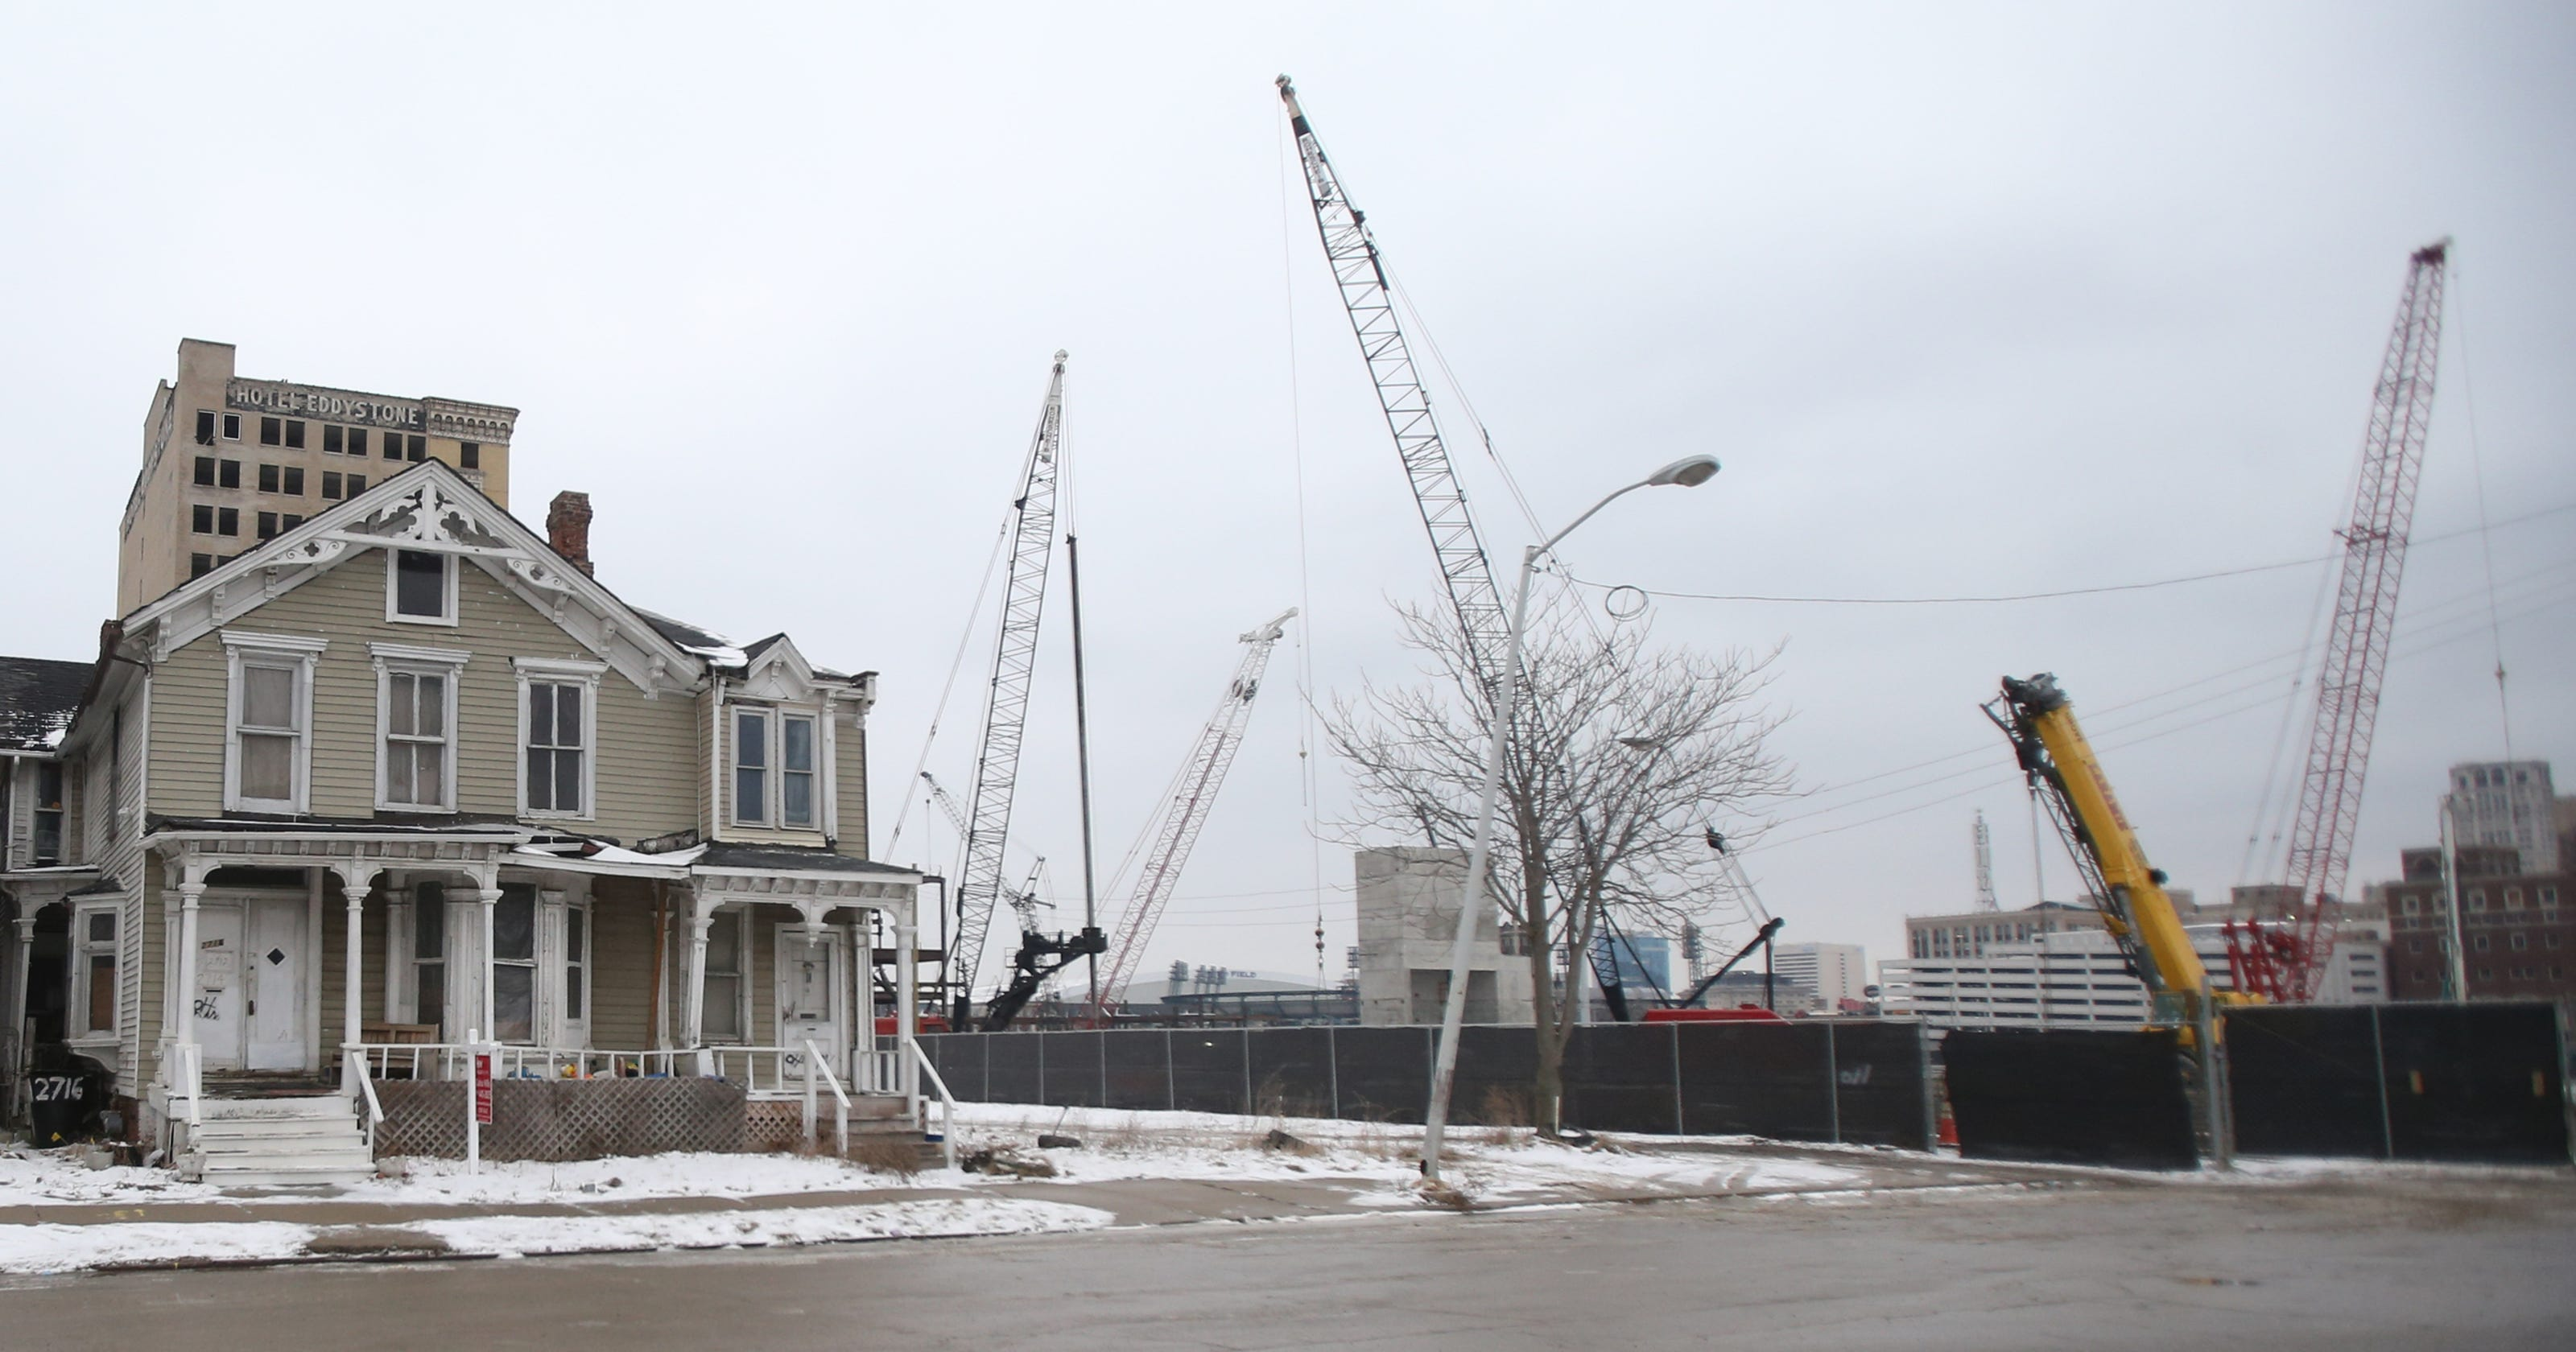 $4M price tag for empty house near Red Wings arena